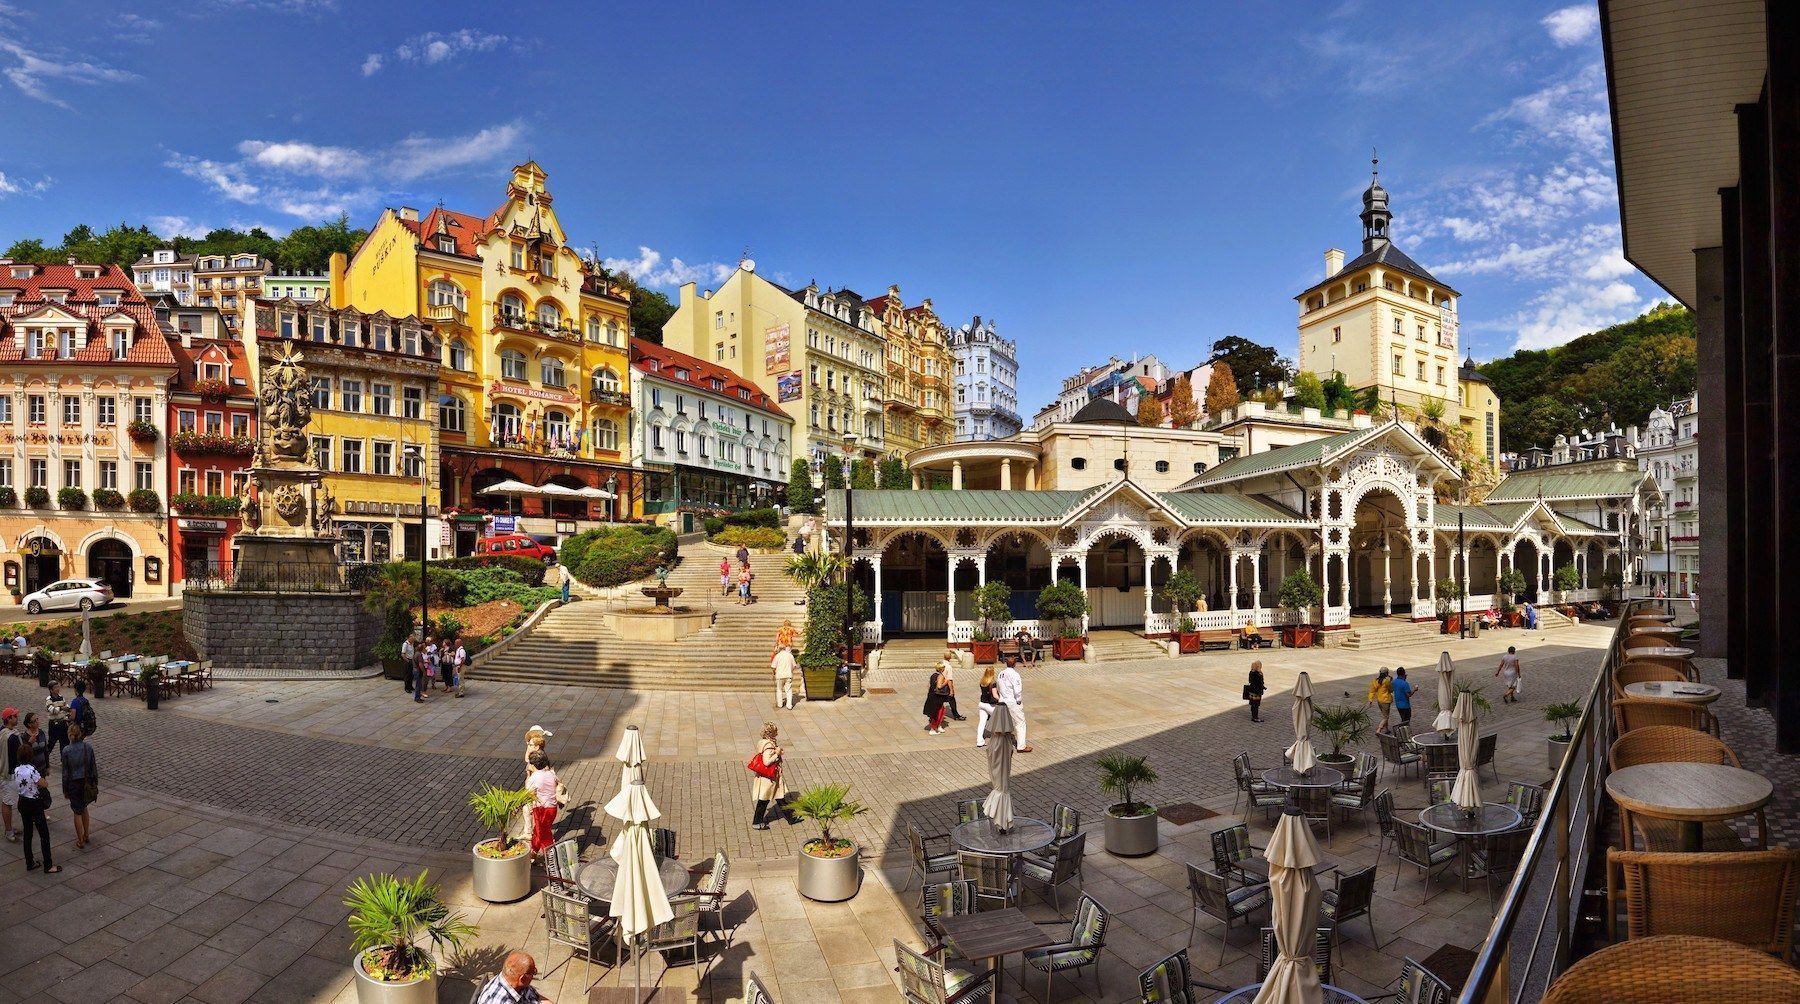 Karlovy Vary city center, spa resort in Czech Republic